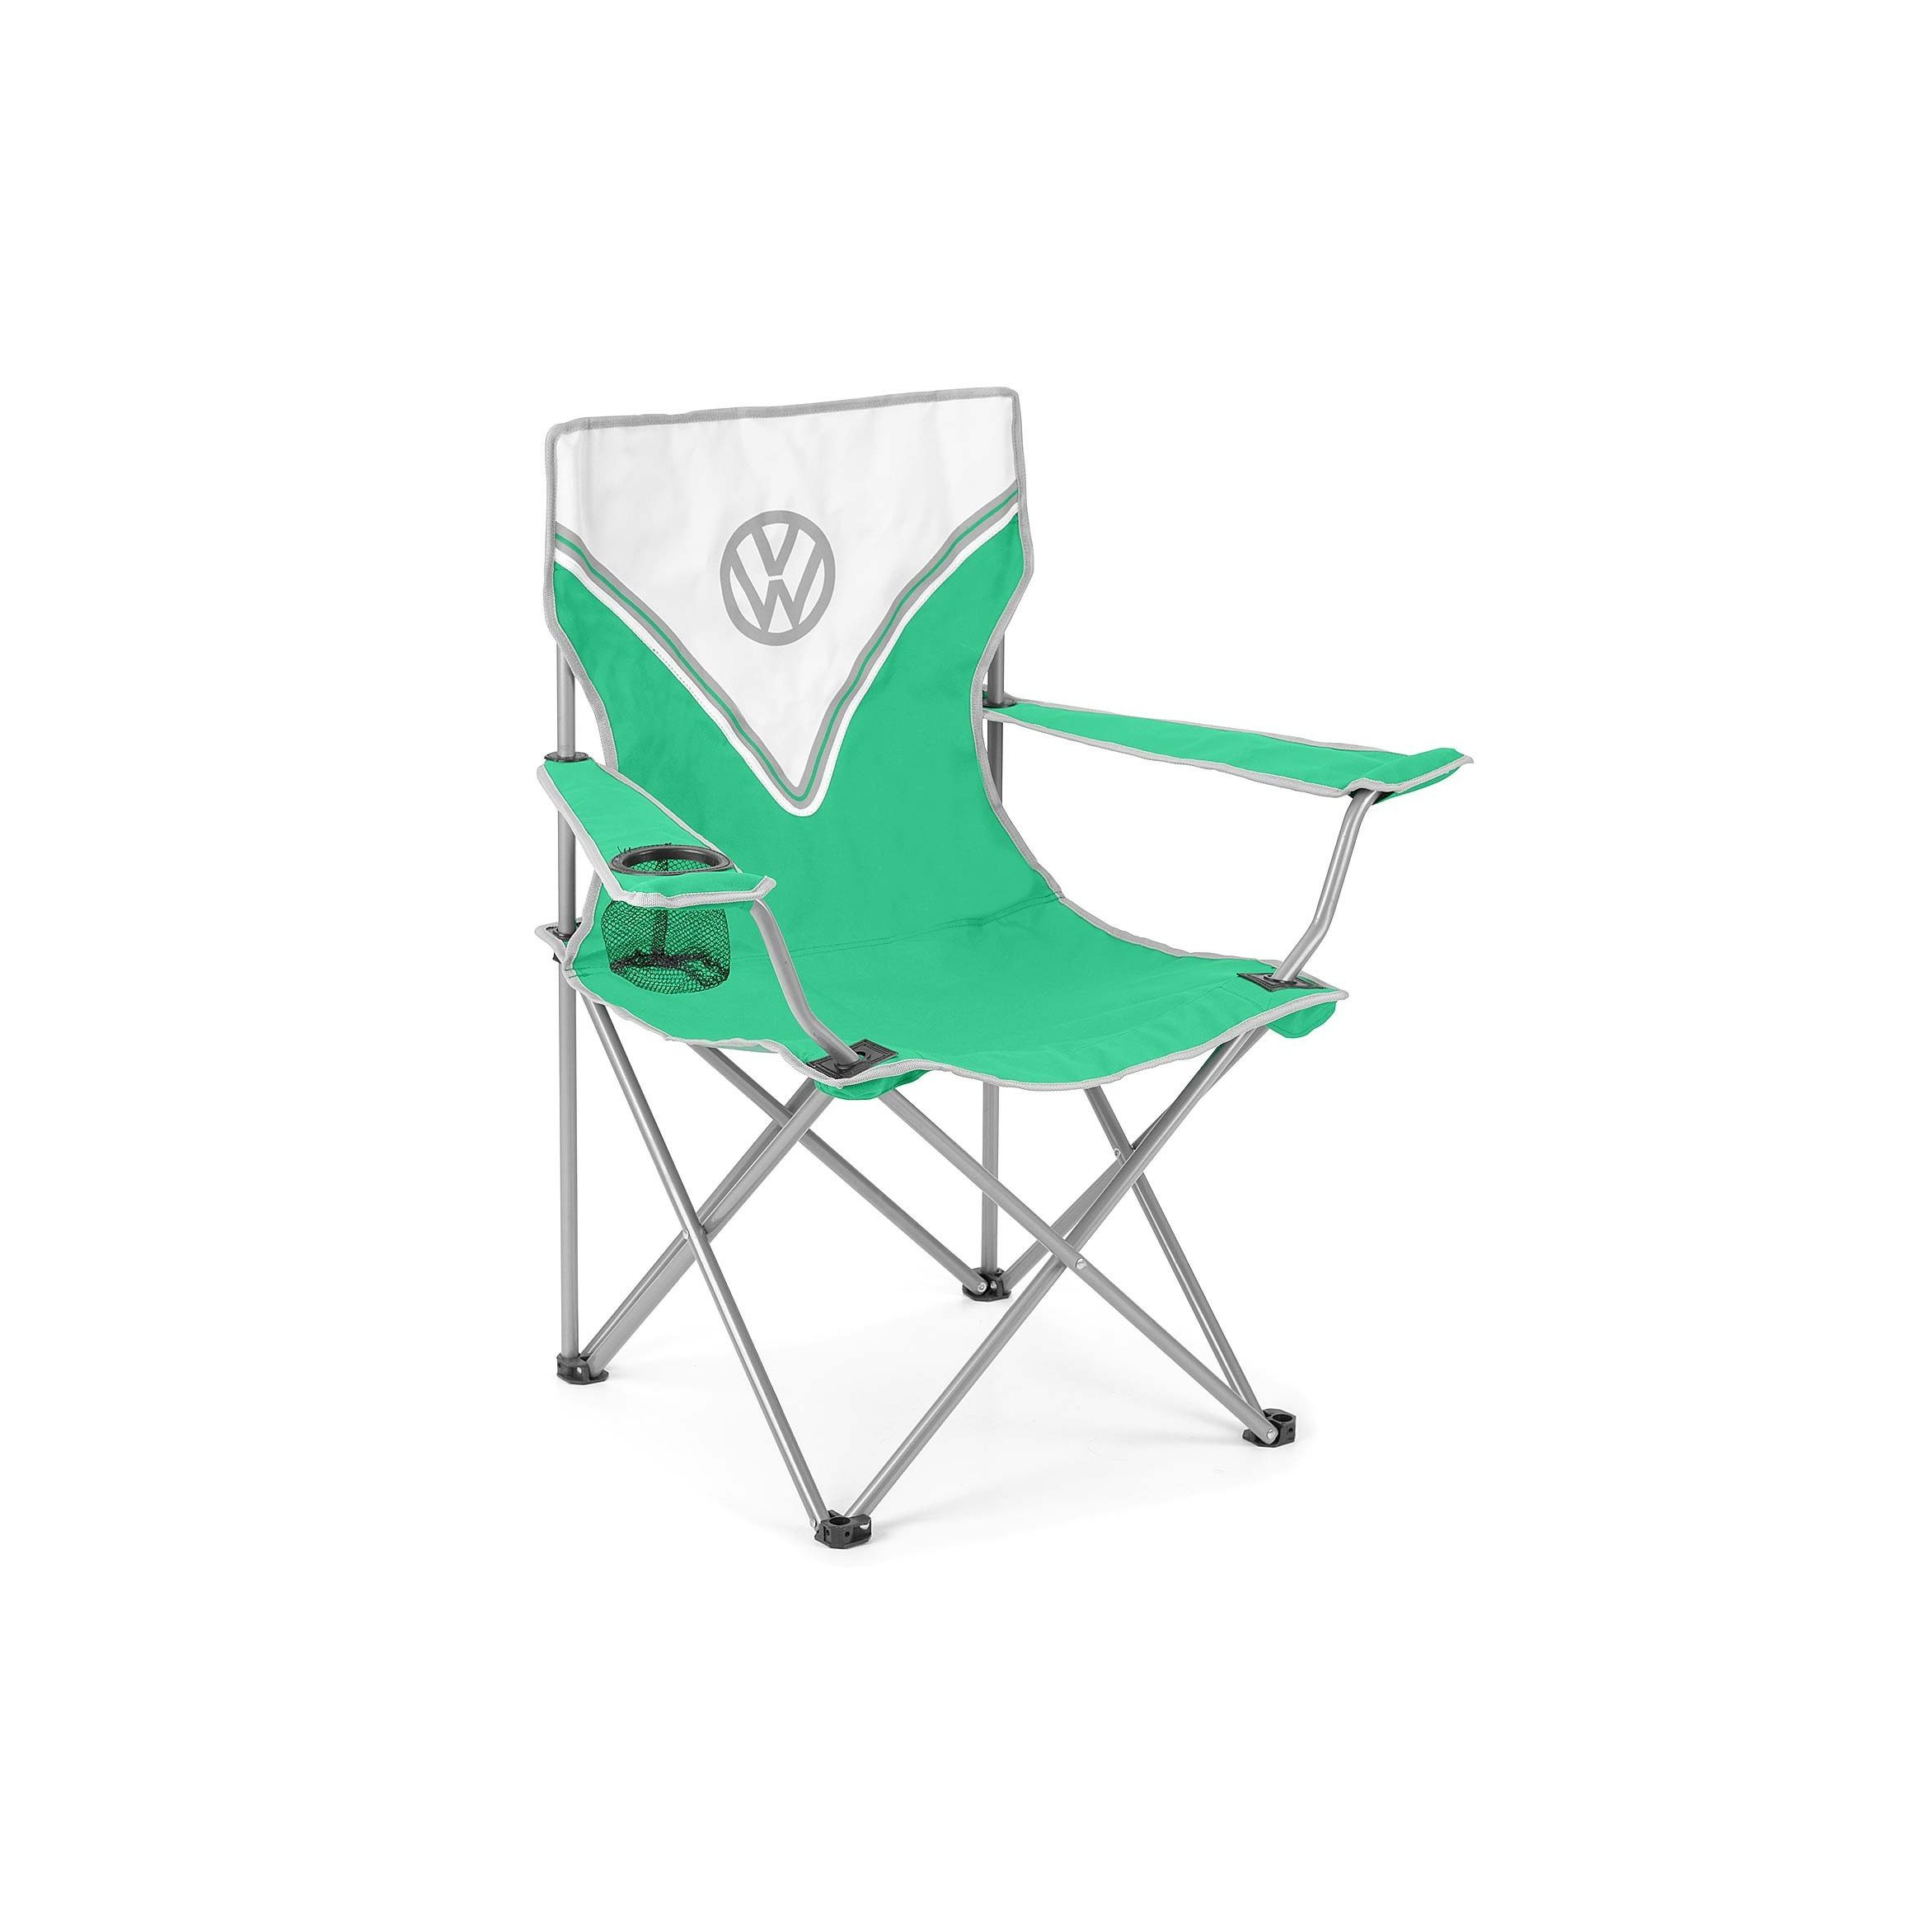 Vw Camping Chair Green 2